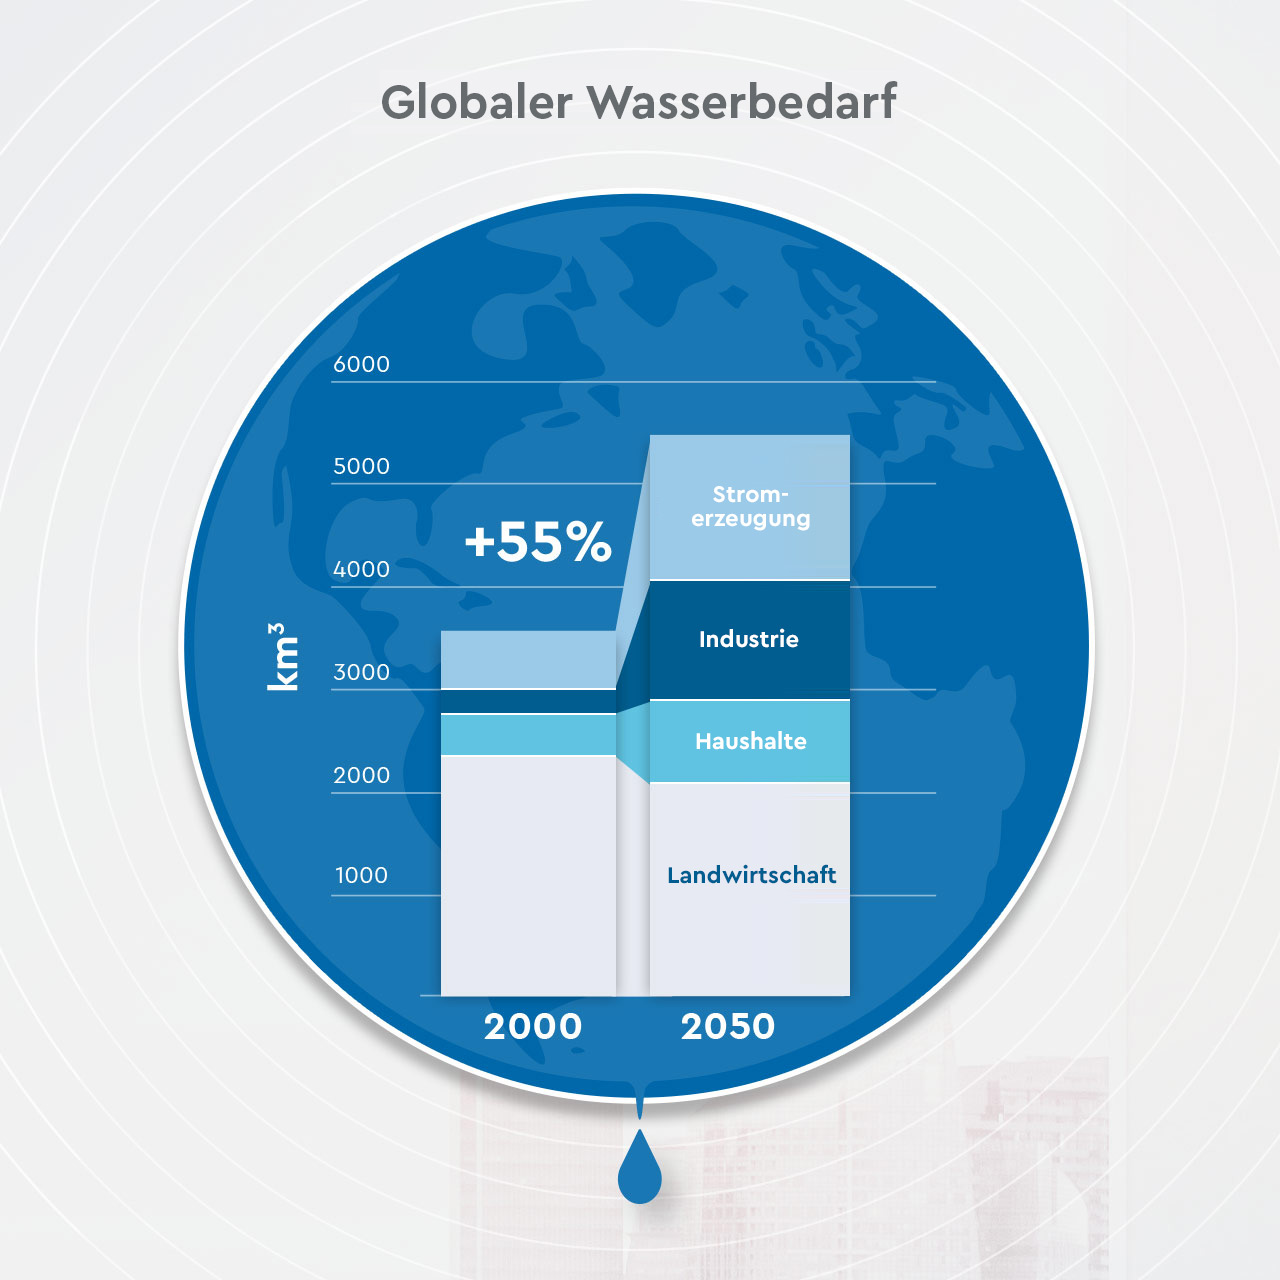 Global demand for water